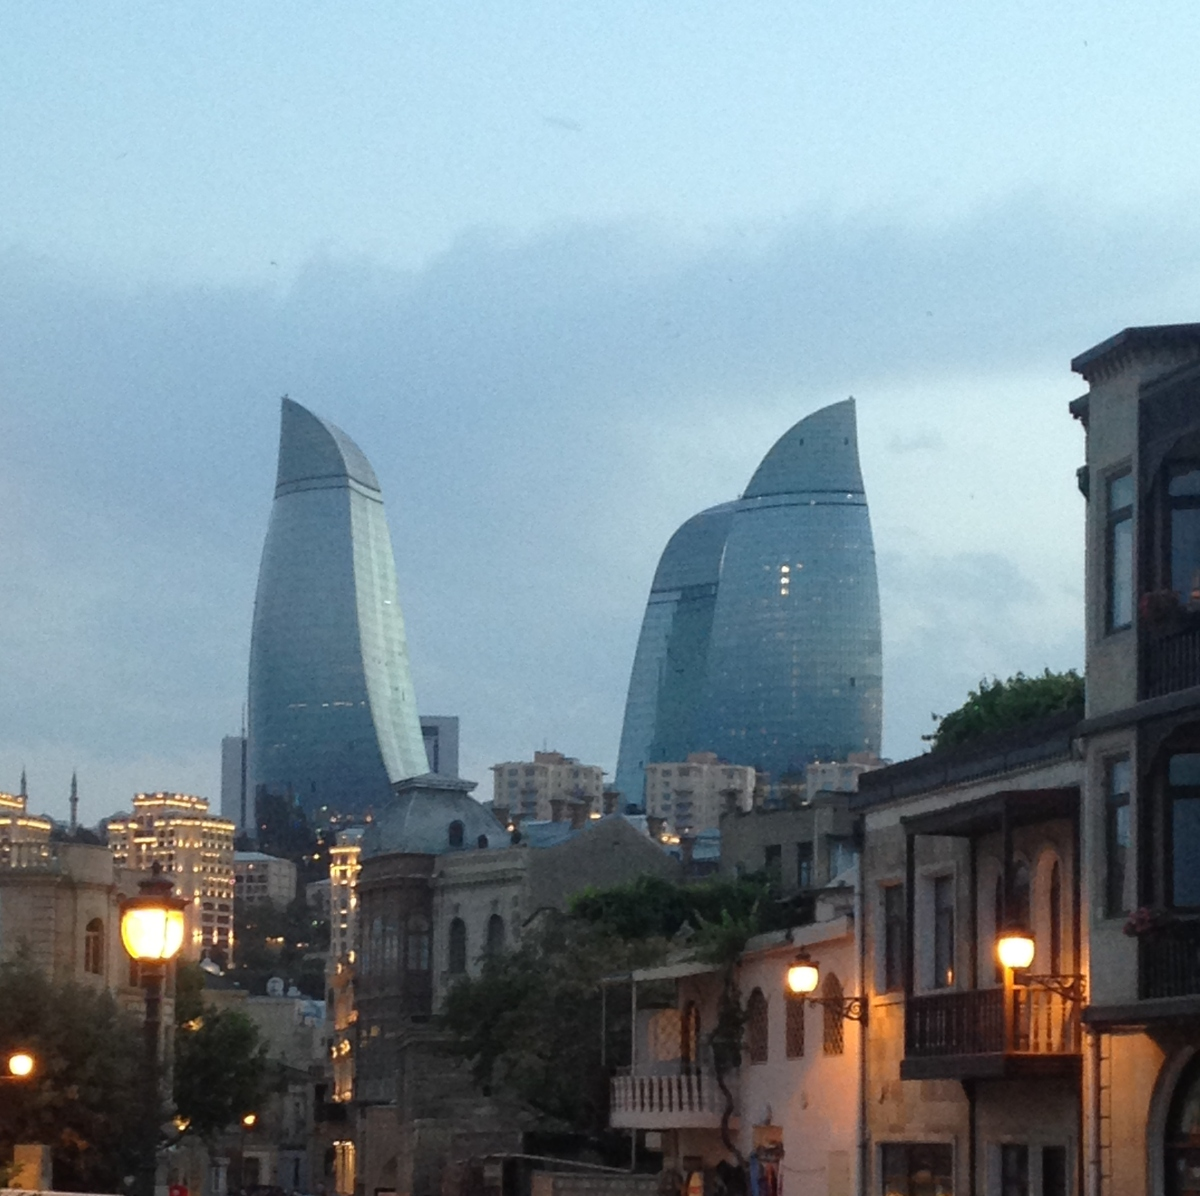 Azerbaijan is becoming one of the popular tourist destinations